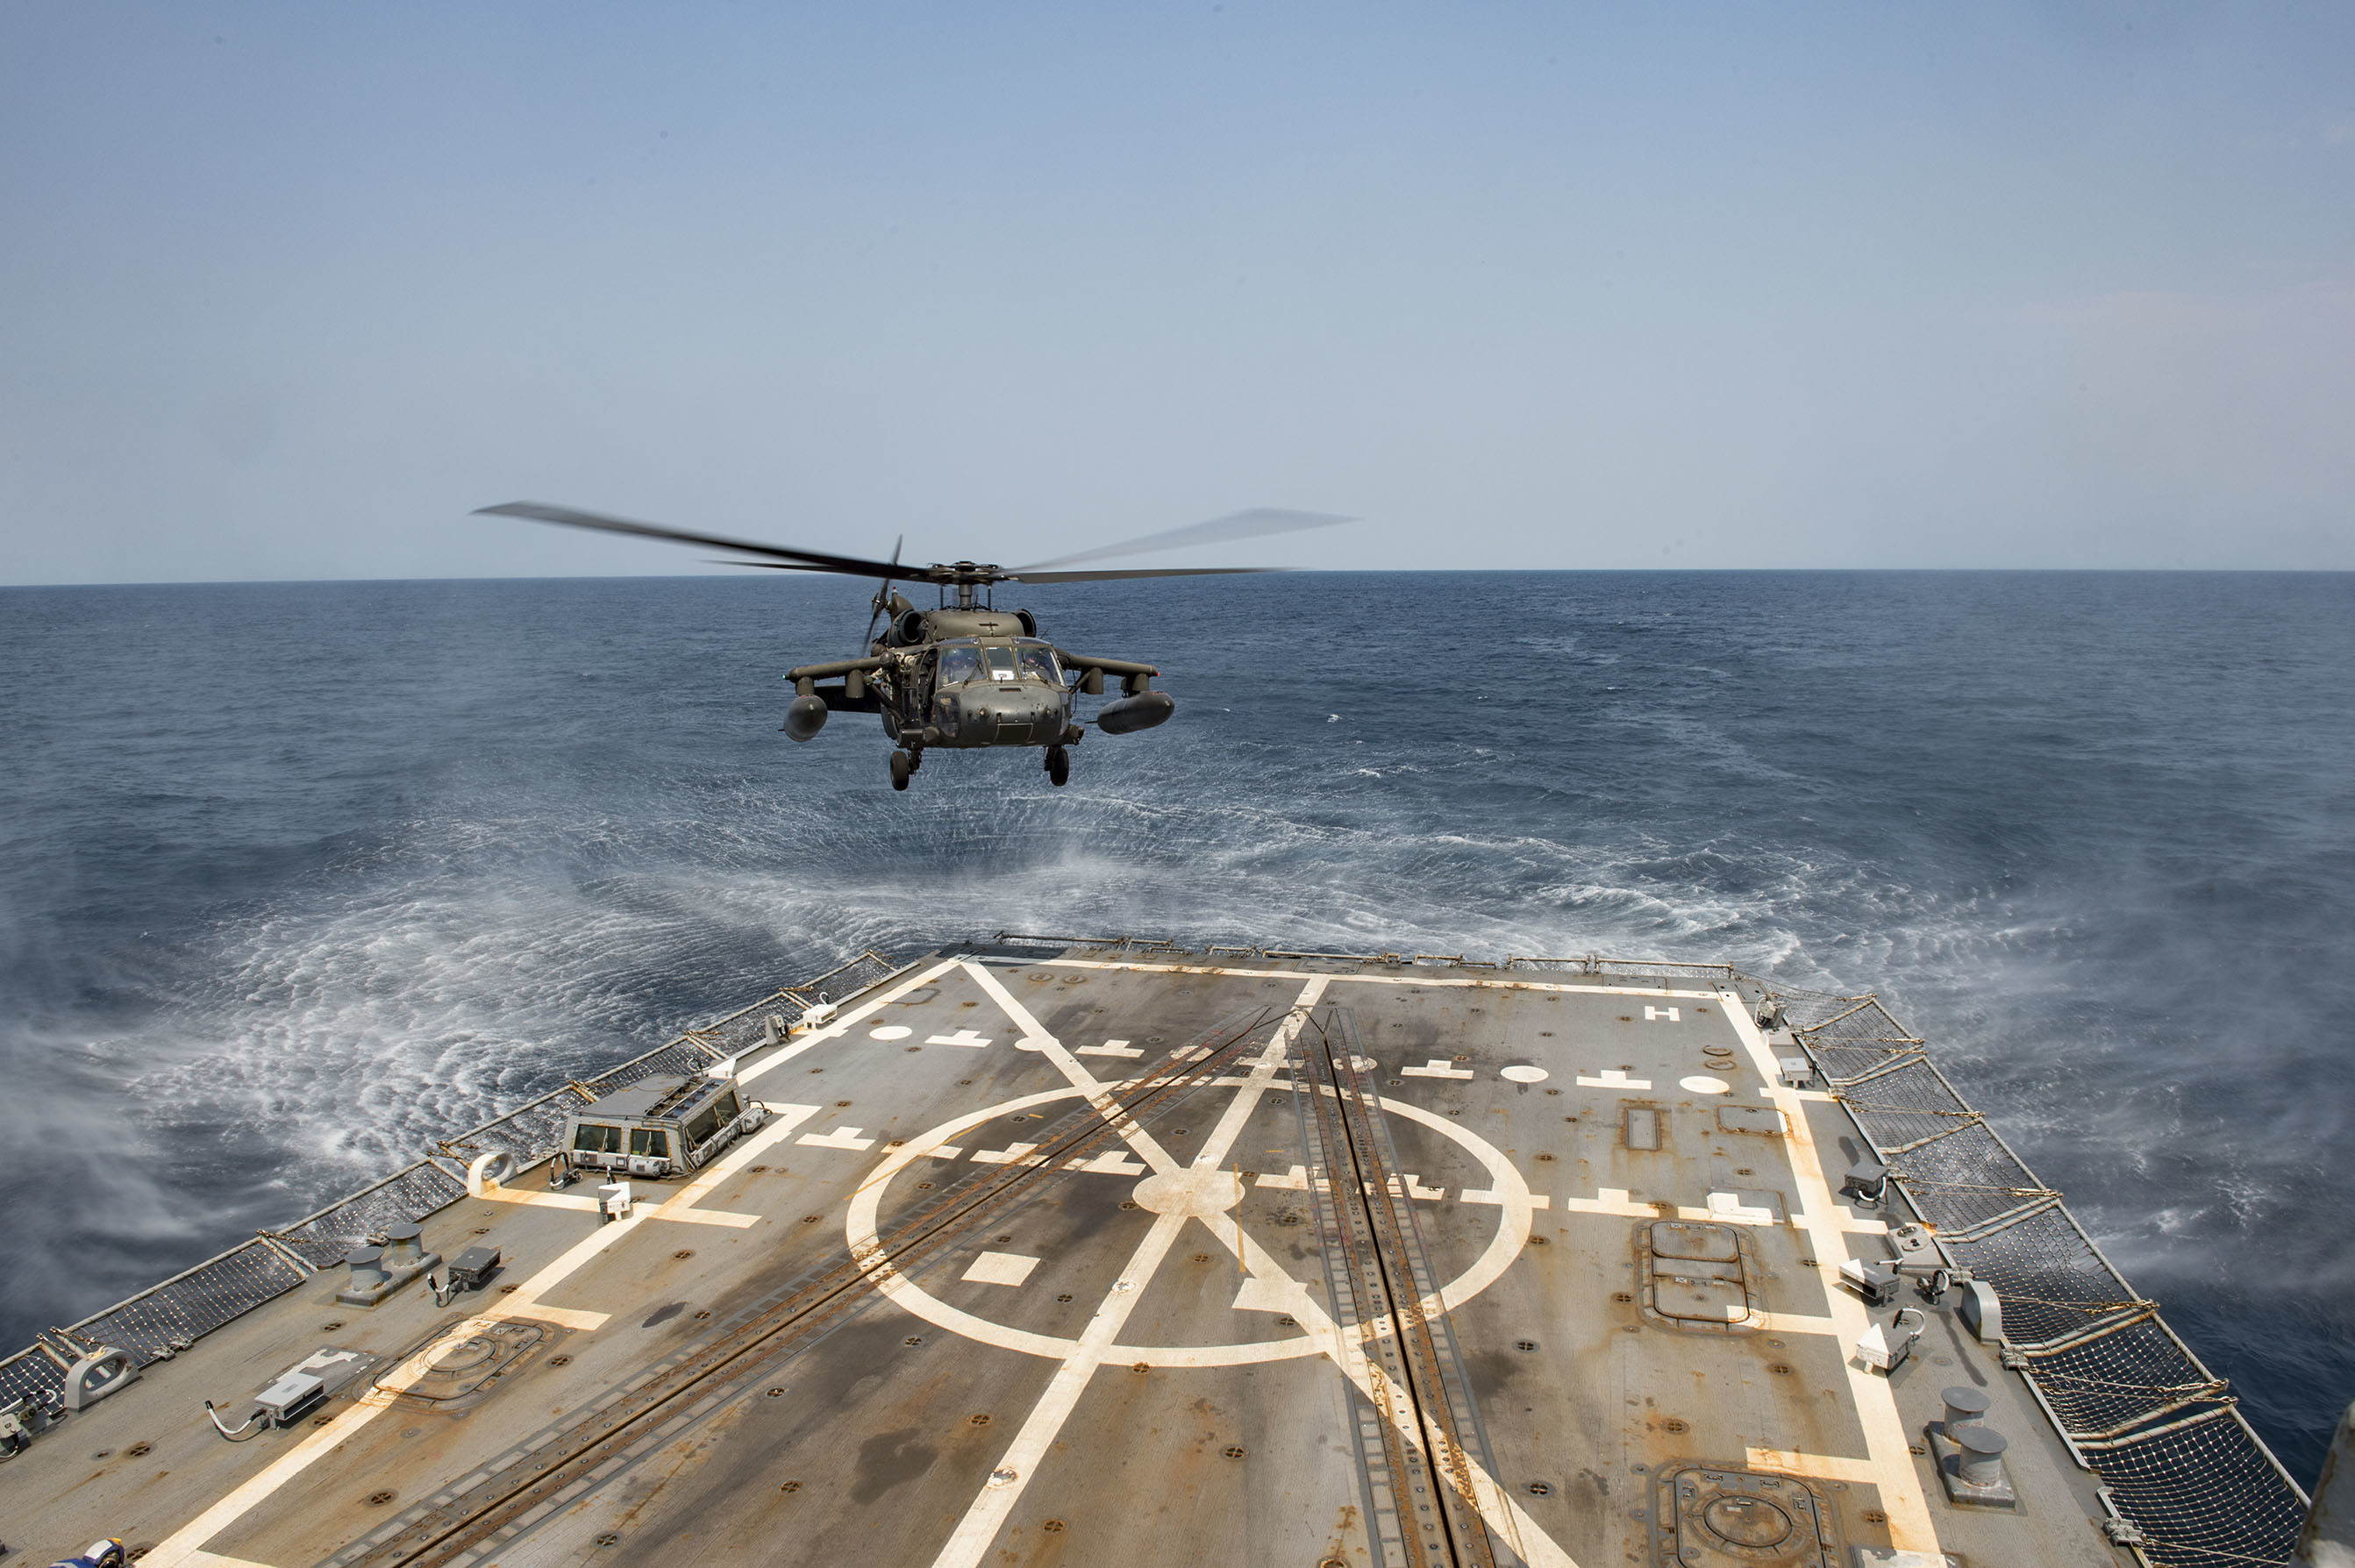 An Army UH-60 Blackhawk helicopter from the 1st Battalion, 228th Aviation Regiment lands on the flight deck aboard the Arleigh Burke-class guided-missile destroyer USS Lassen (DDG 82) while conducting deck landing qualifications (DLQs). Lassen is currently underway in support of Operation Martillo, a joint operation with the U.S. Coast Guard and partner nations within the 4th Fleet area of responsibility. SOUTHCOM commander Adm. Kurt Tidd said he's been pushing for greater inter-agency and international collaboration as well as innovation in his theater, all of which was showcased in Operation Martillo. US Navy photo.